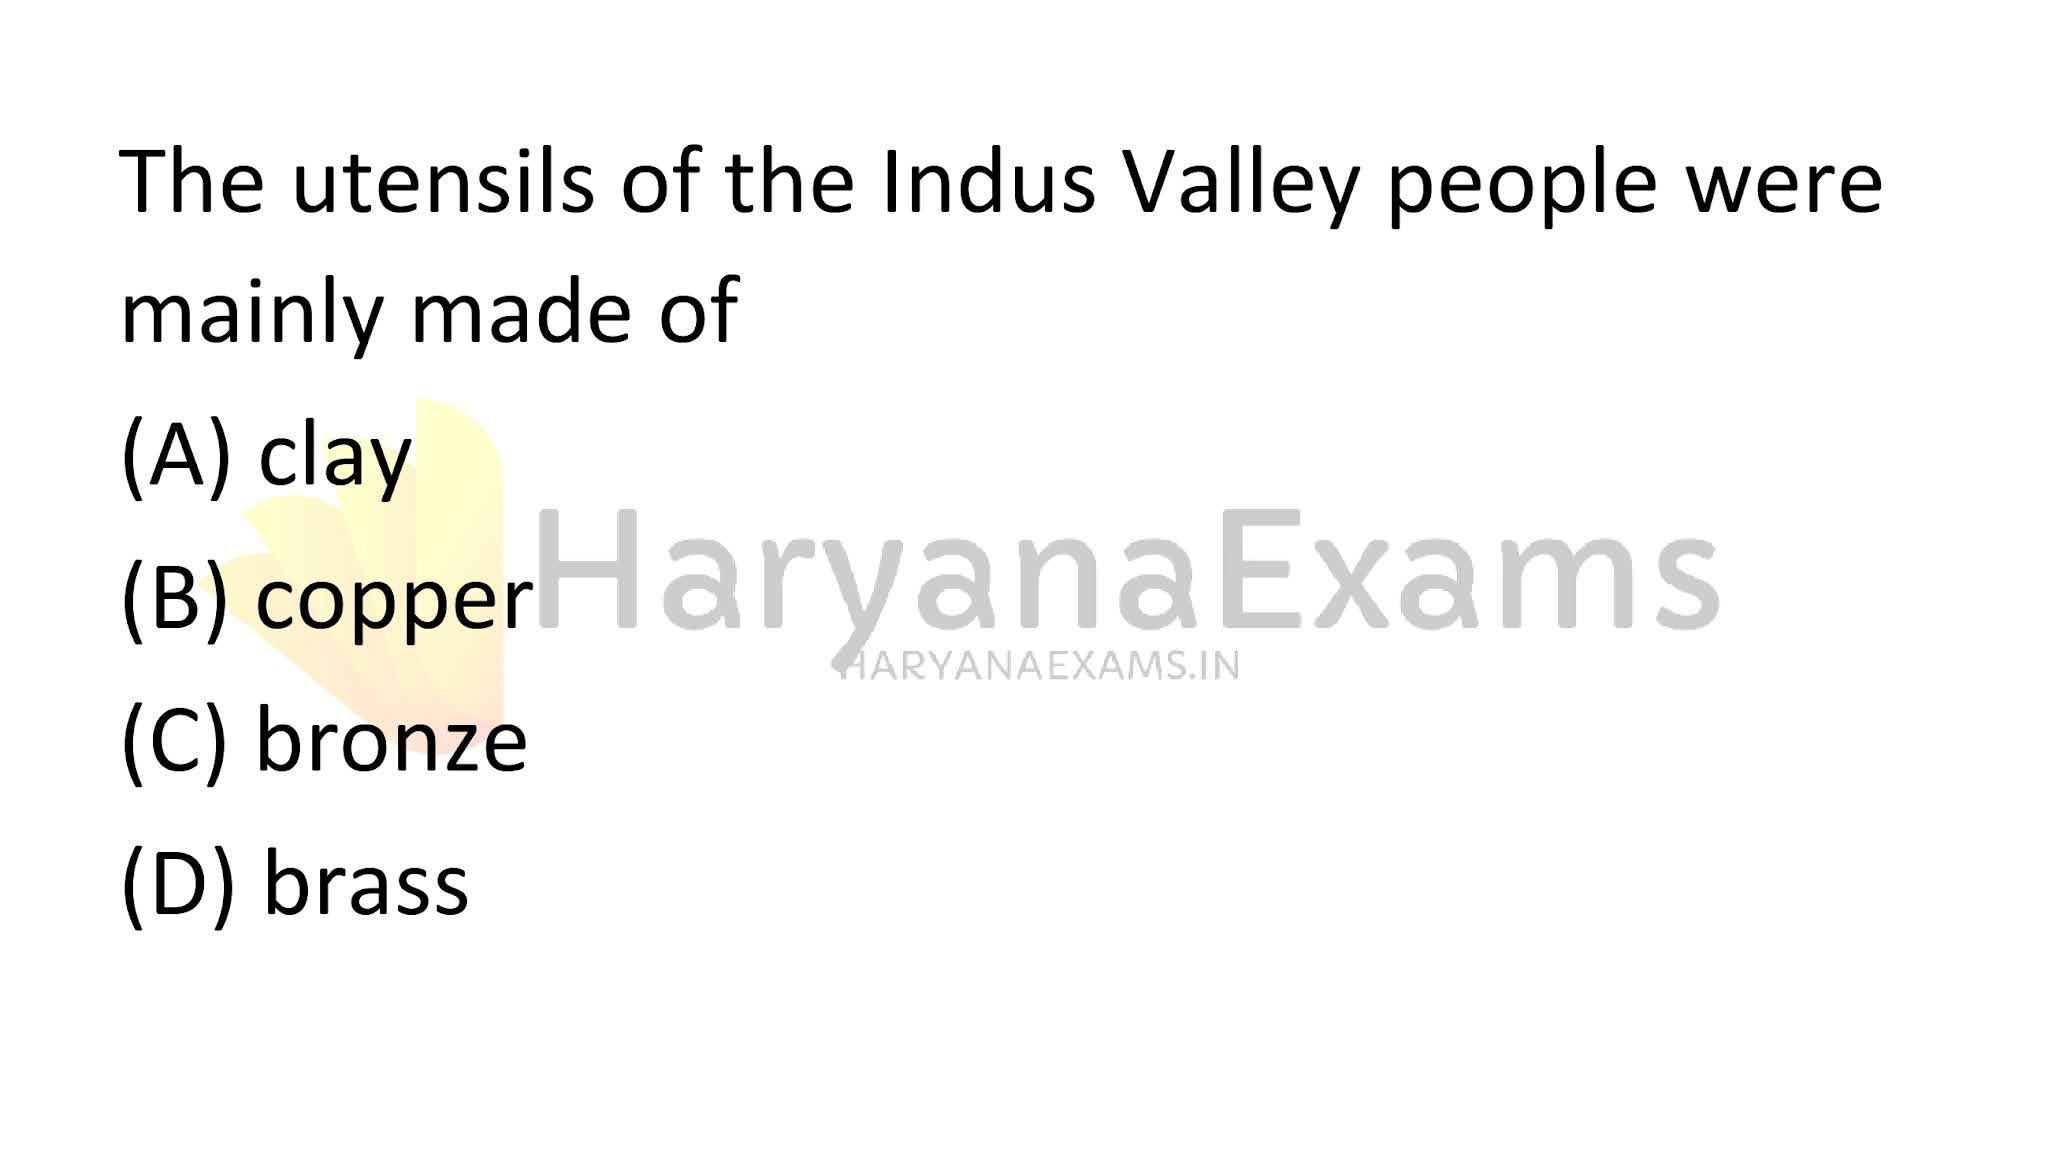 The utensils of the Indus Valley people were mainly made of